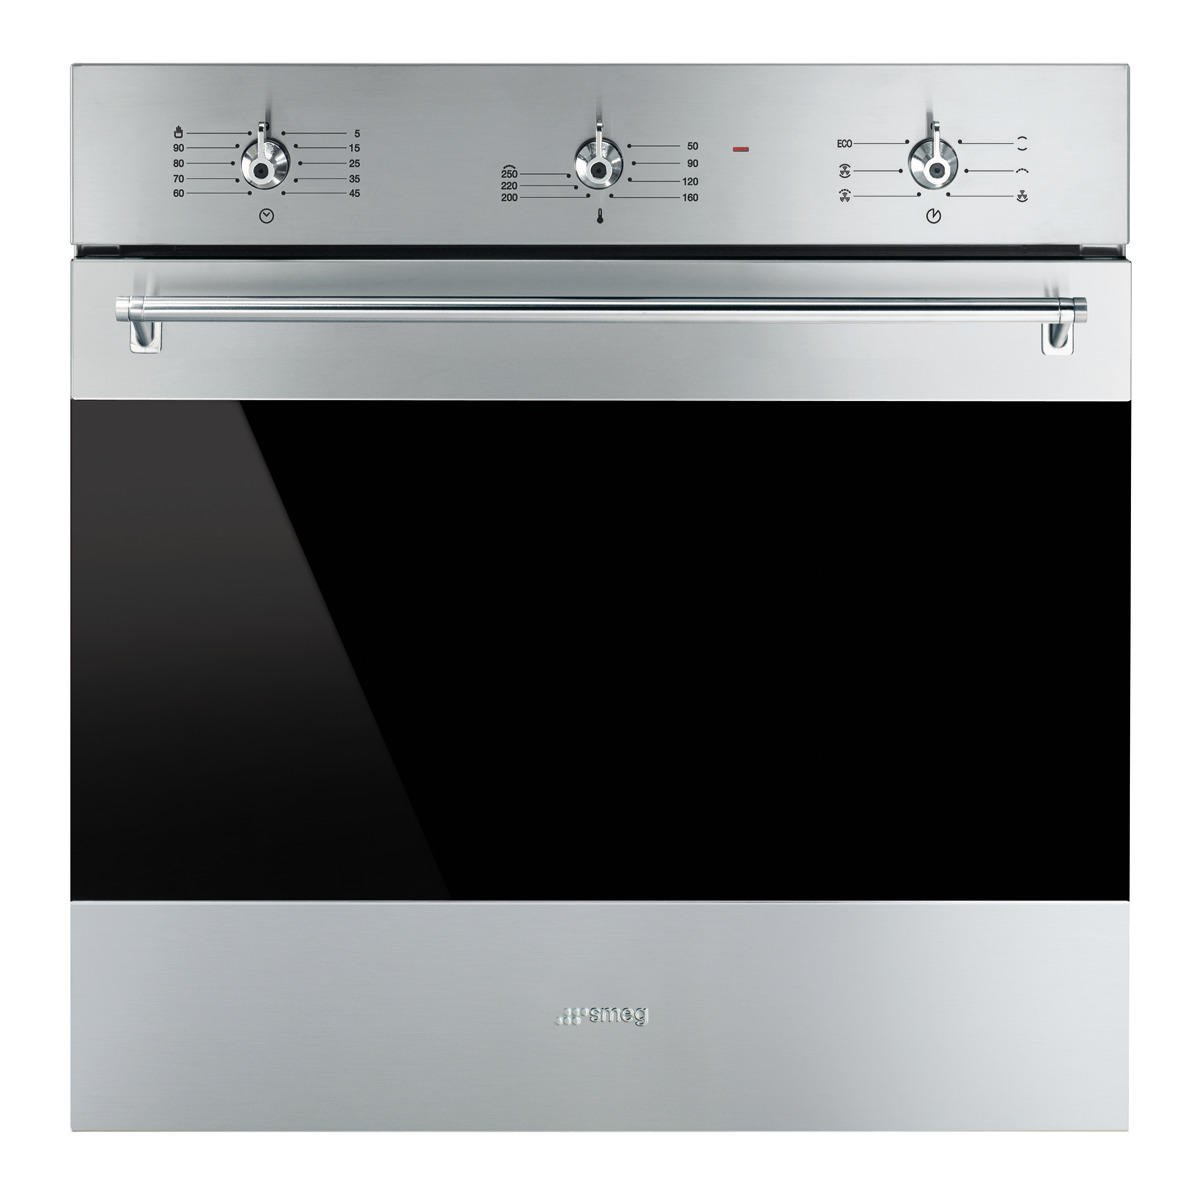 Horno Inox Antihuellas SMEG SF-6381 X 5 Niv. Coccion 79 litros Multifuncion